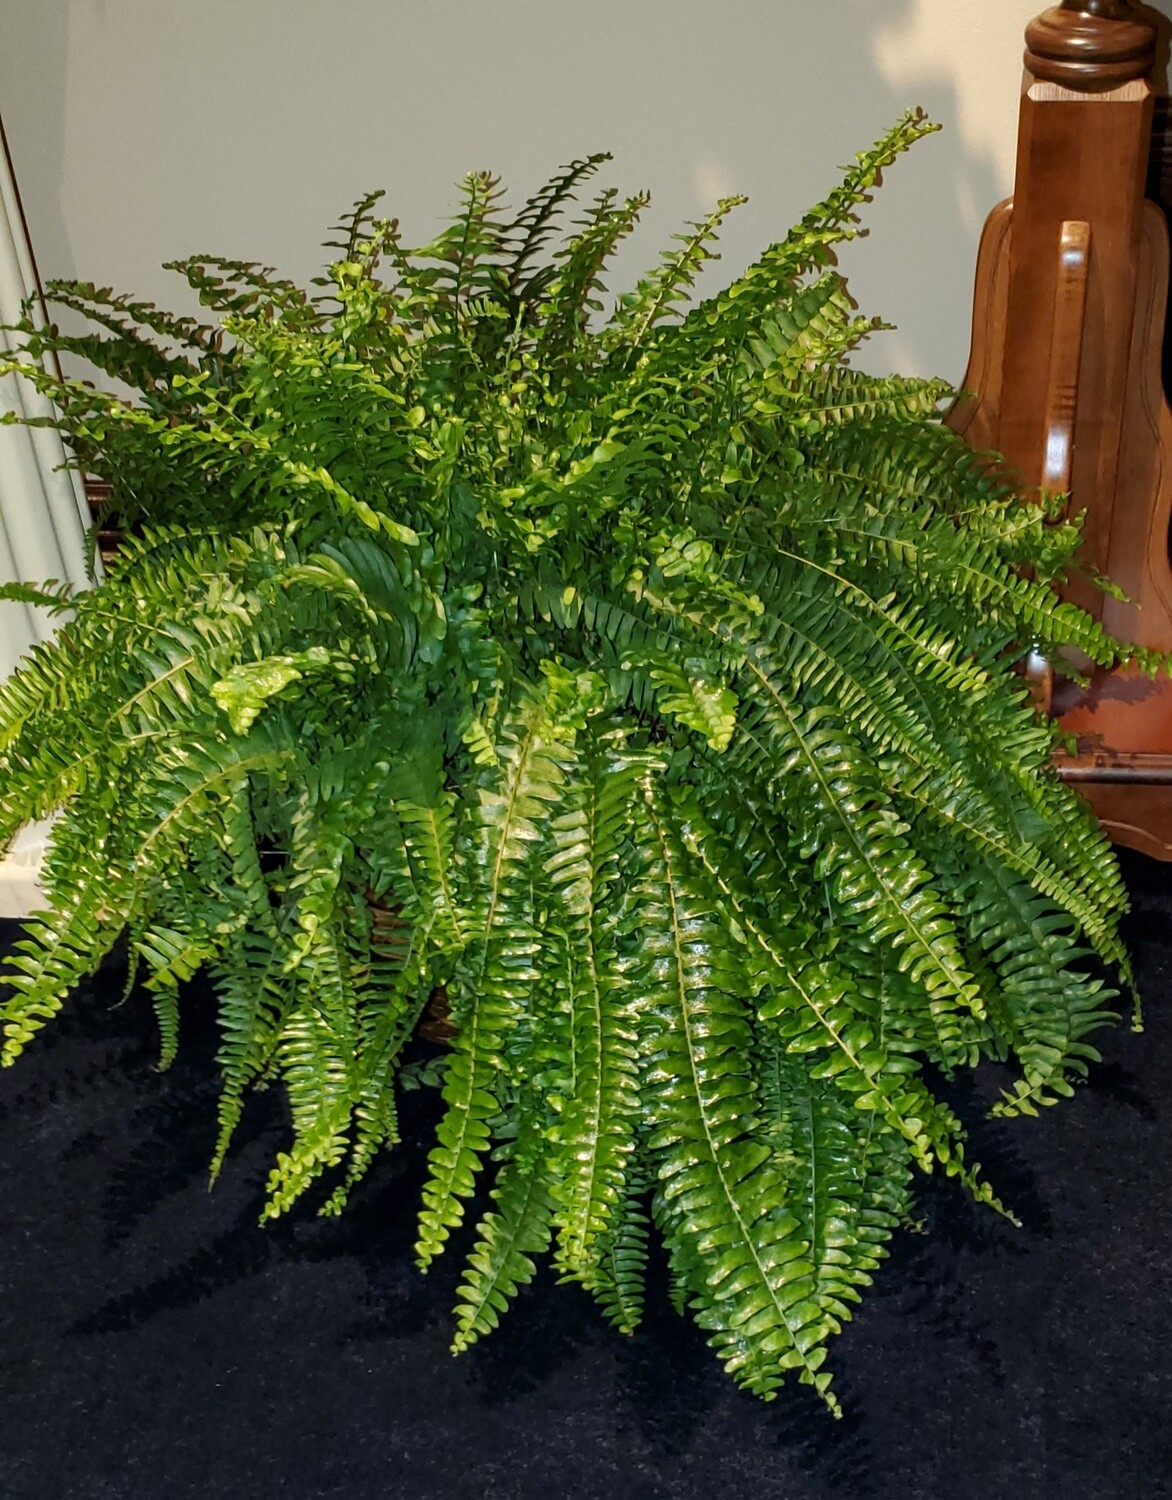 Fern in Basket